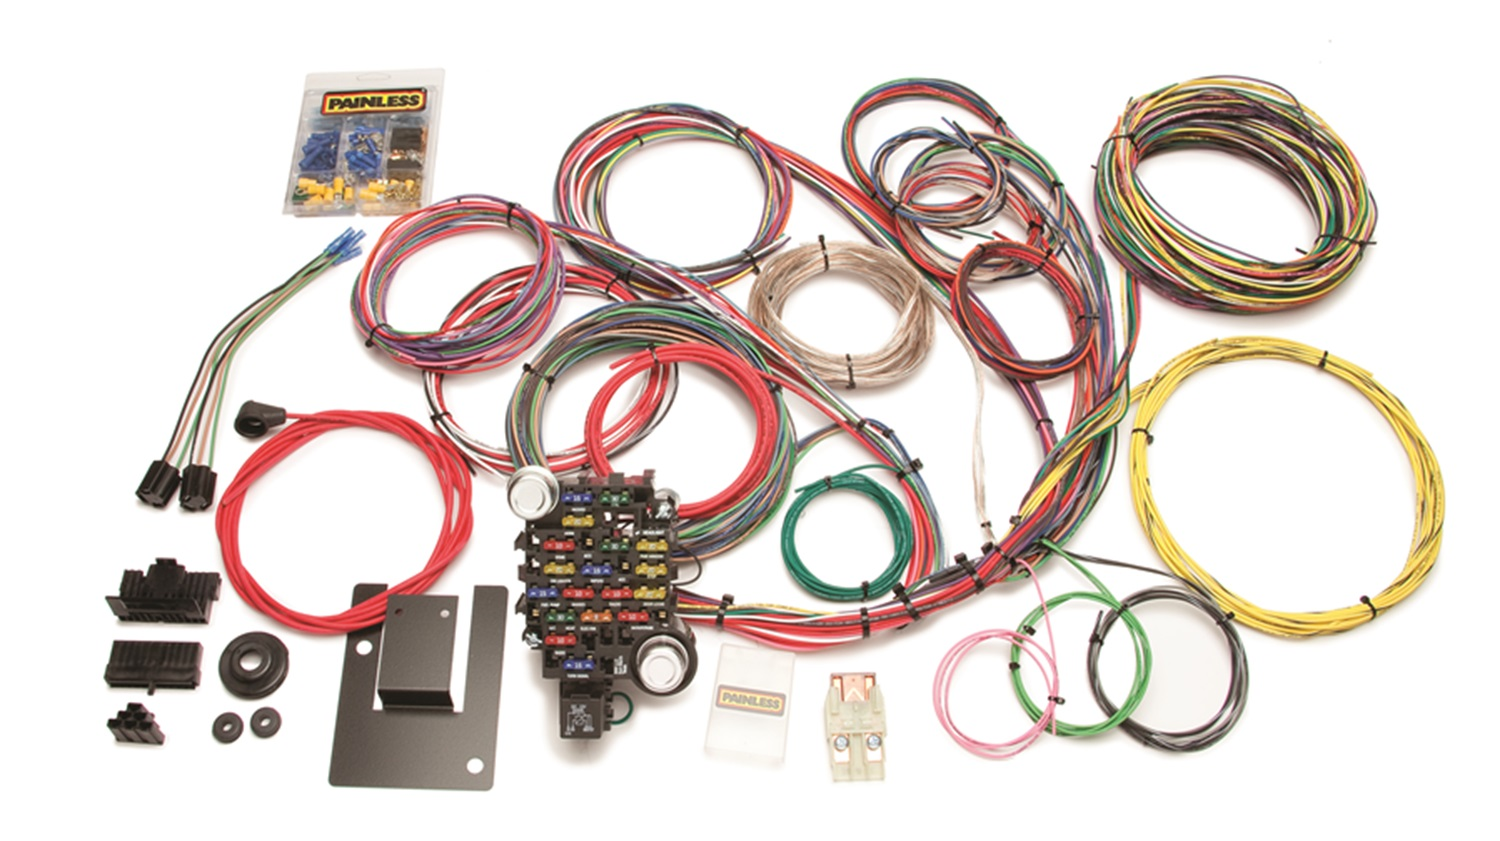 painless 20106 28 circuit customizable classic-plus tri-five chevy chassis  harness